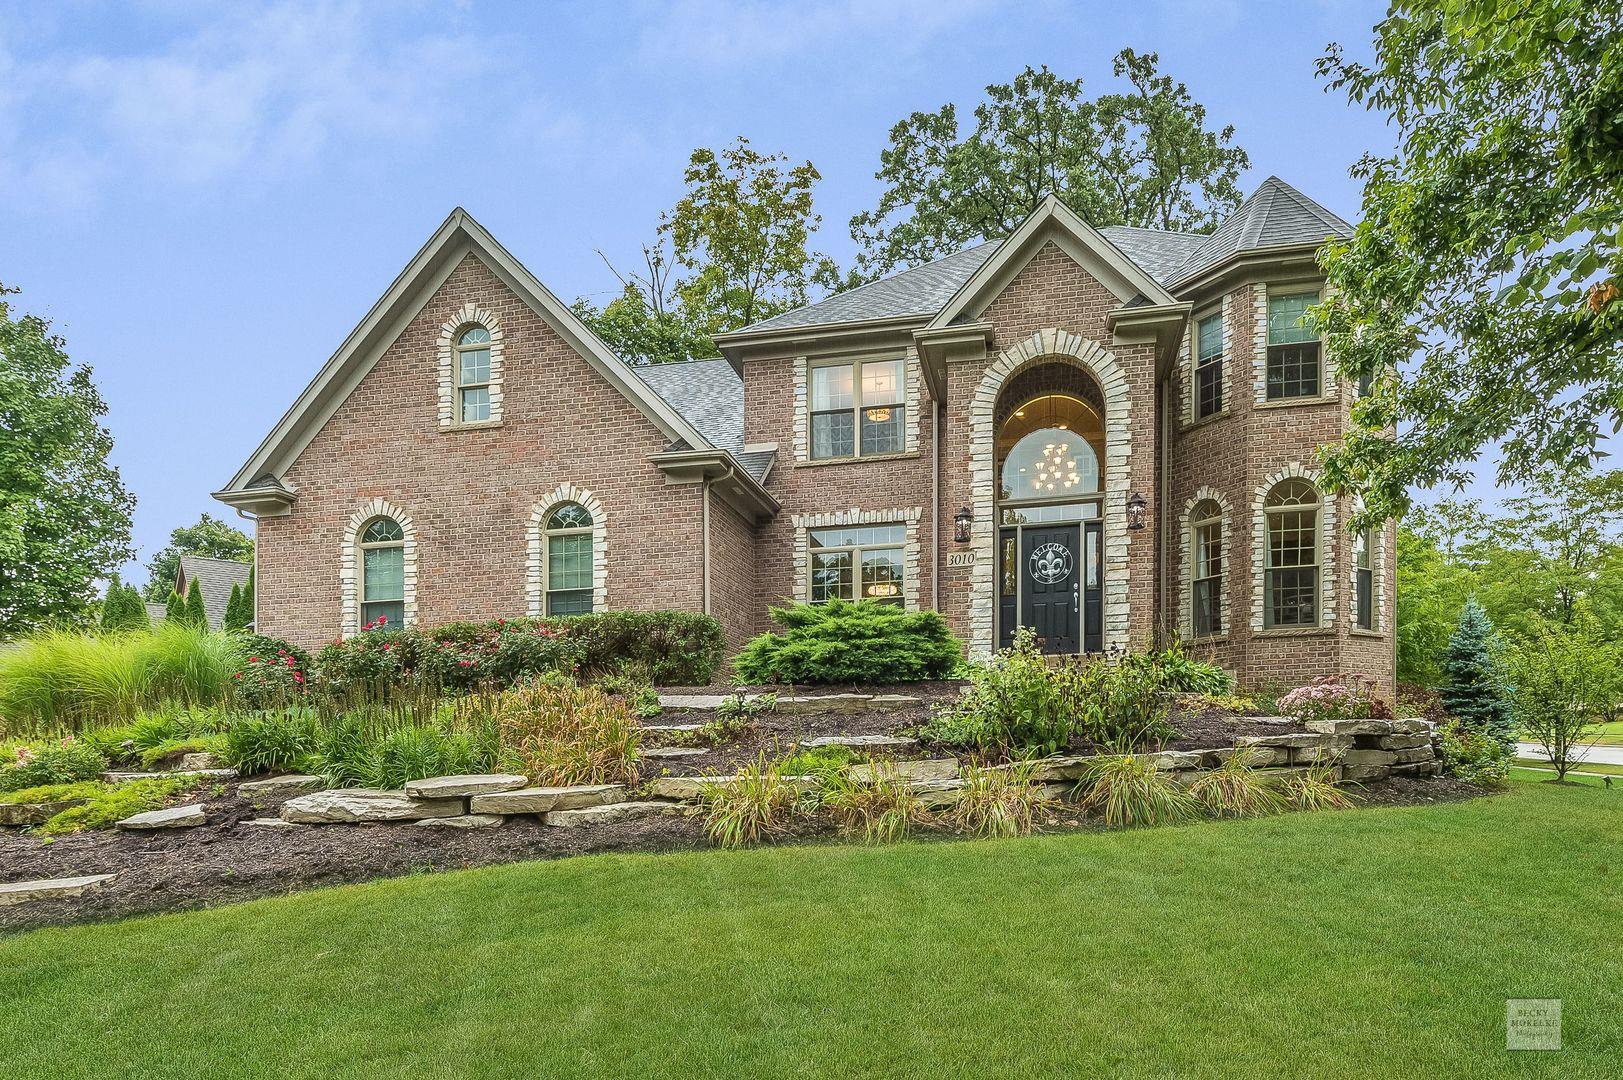 3010 Majestic Oaks Lane, Saint Charles, IL 60174 - #: 10880725